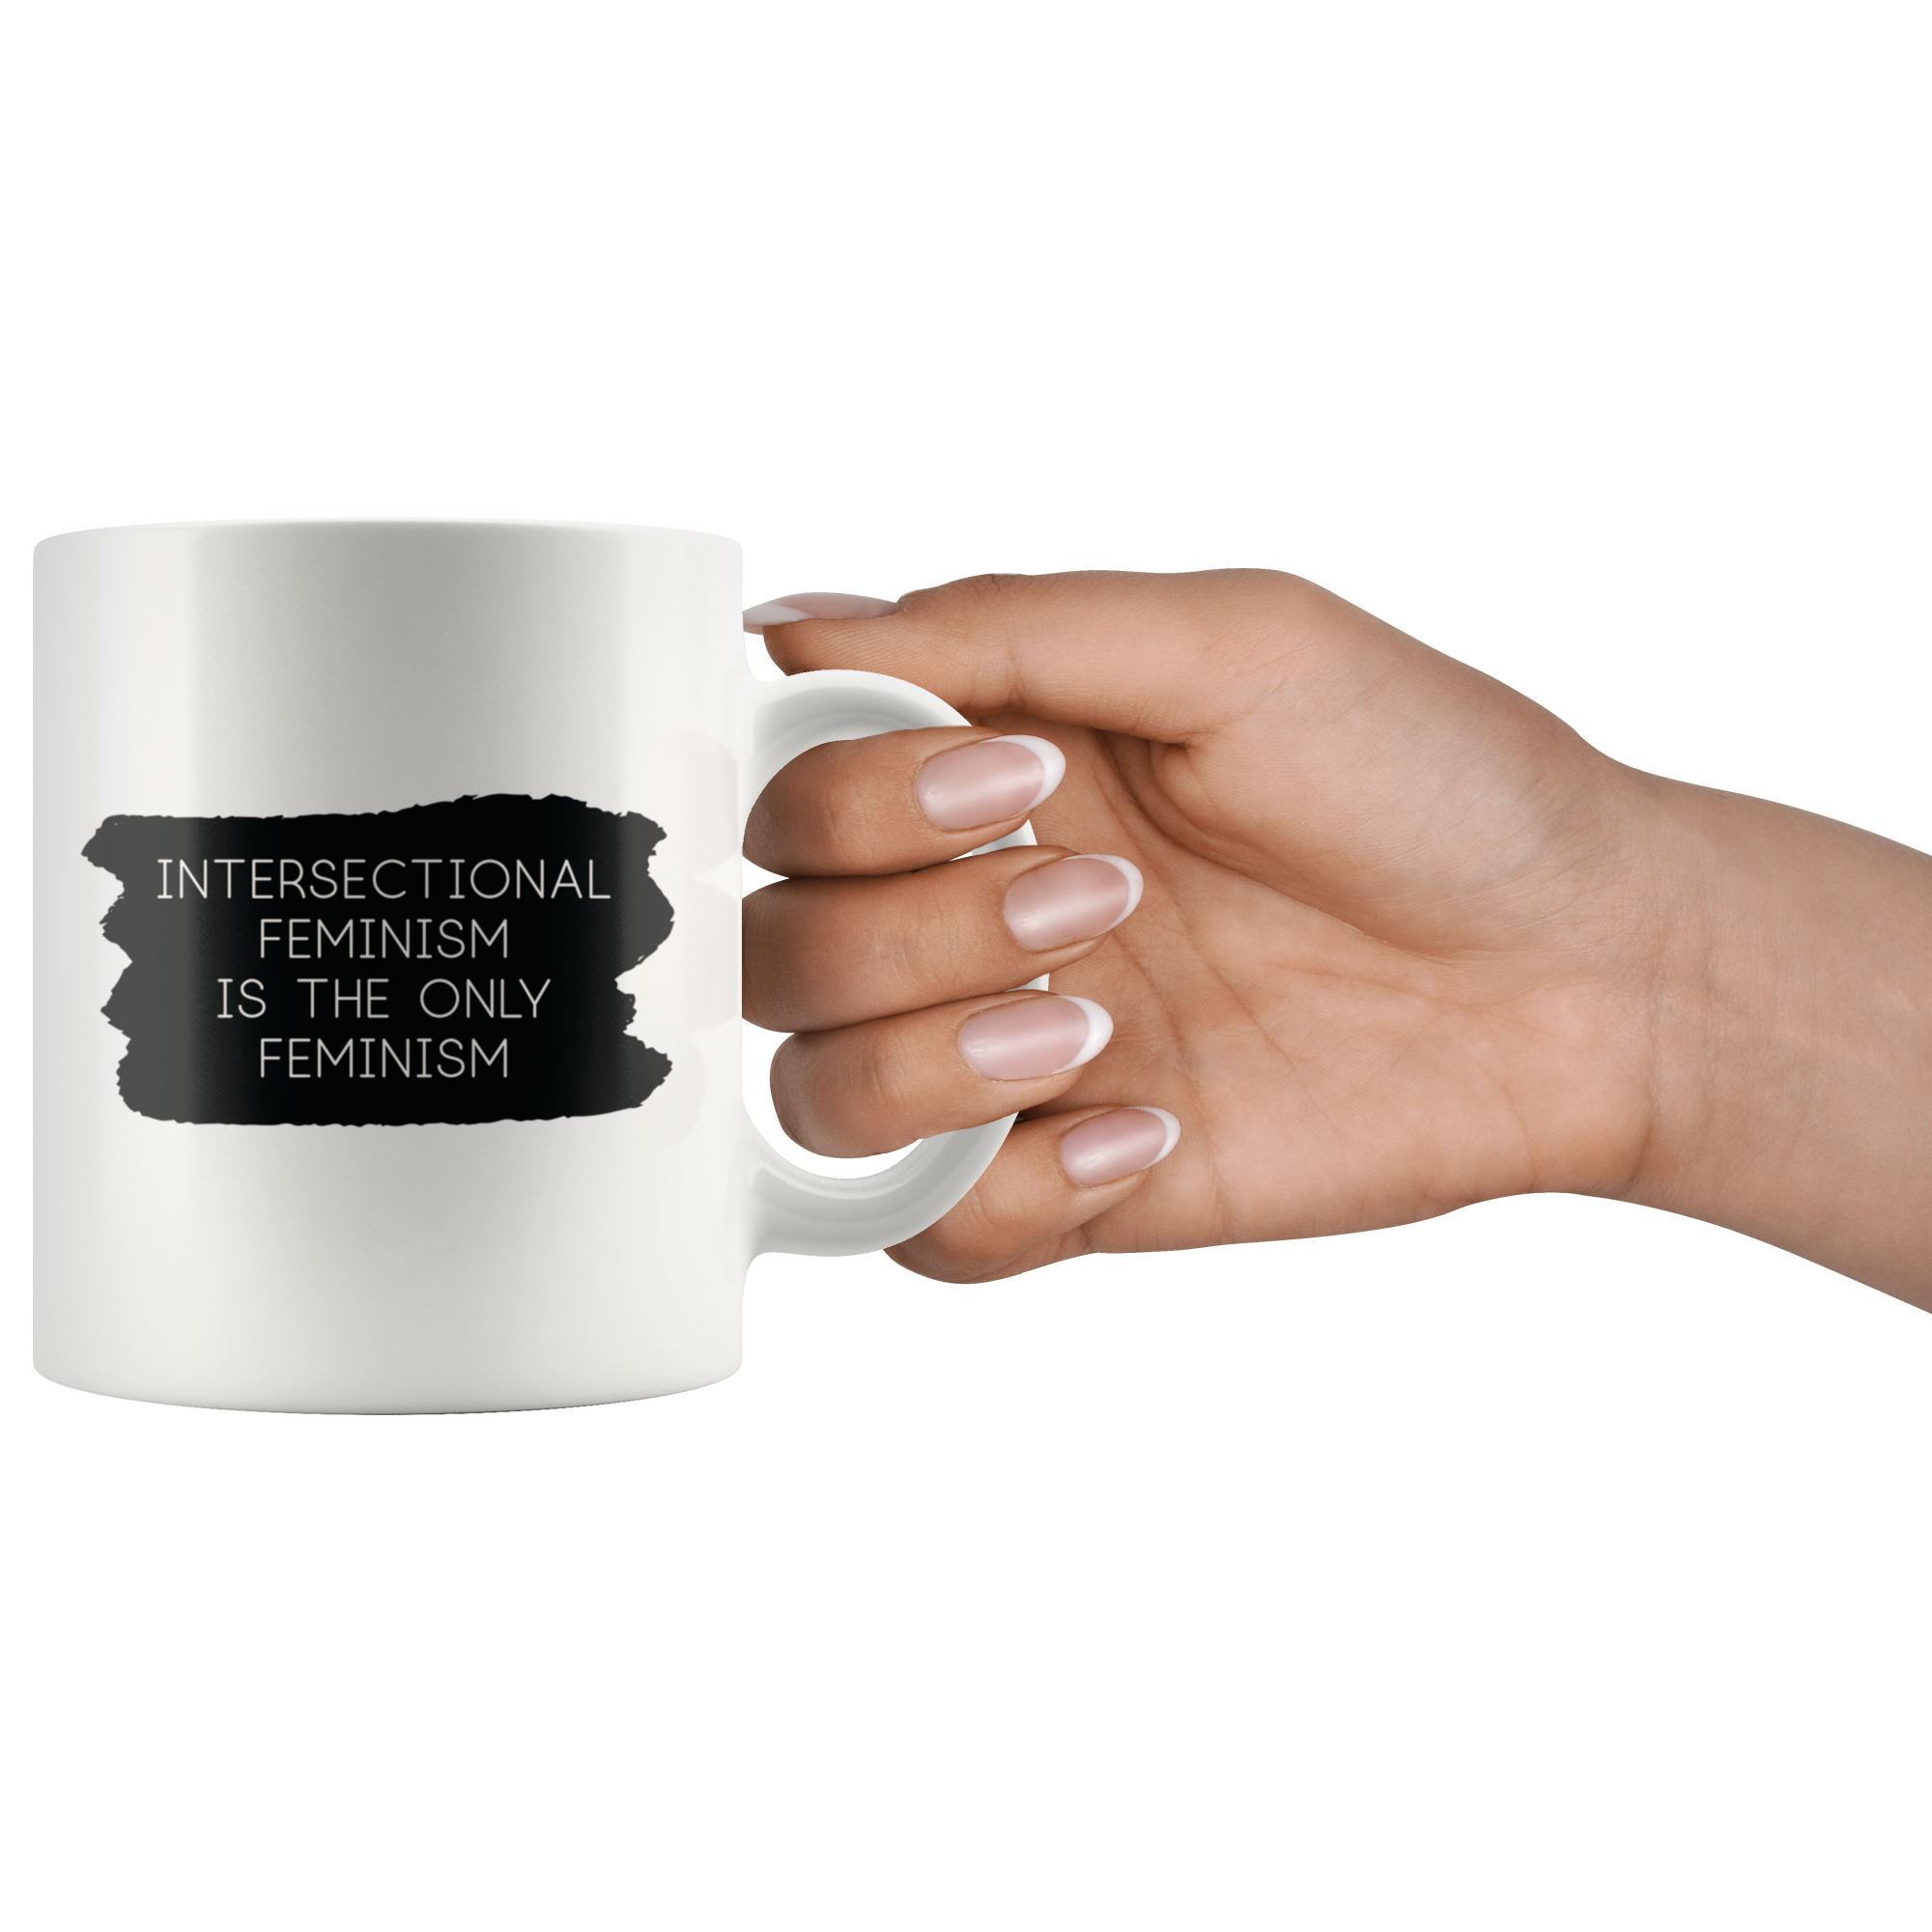 Cute Feminist T Shirt Intersectional Feminism is the Only Feminism Mug - Everyday Unicorns